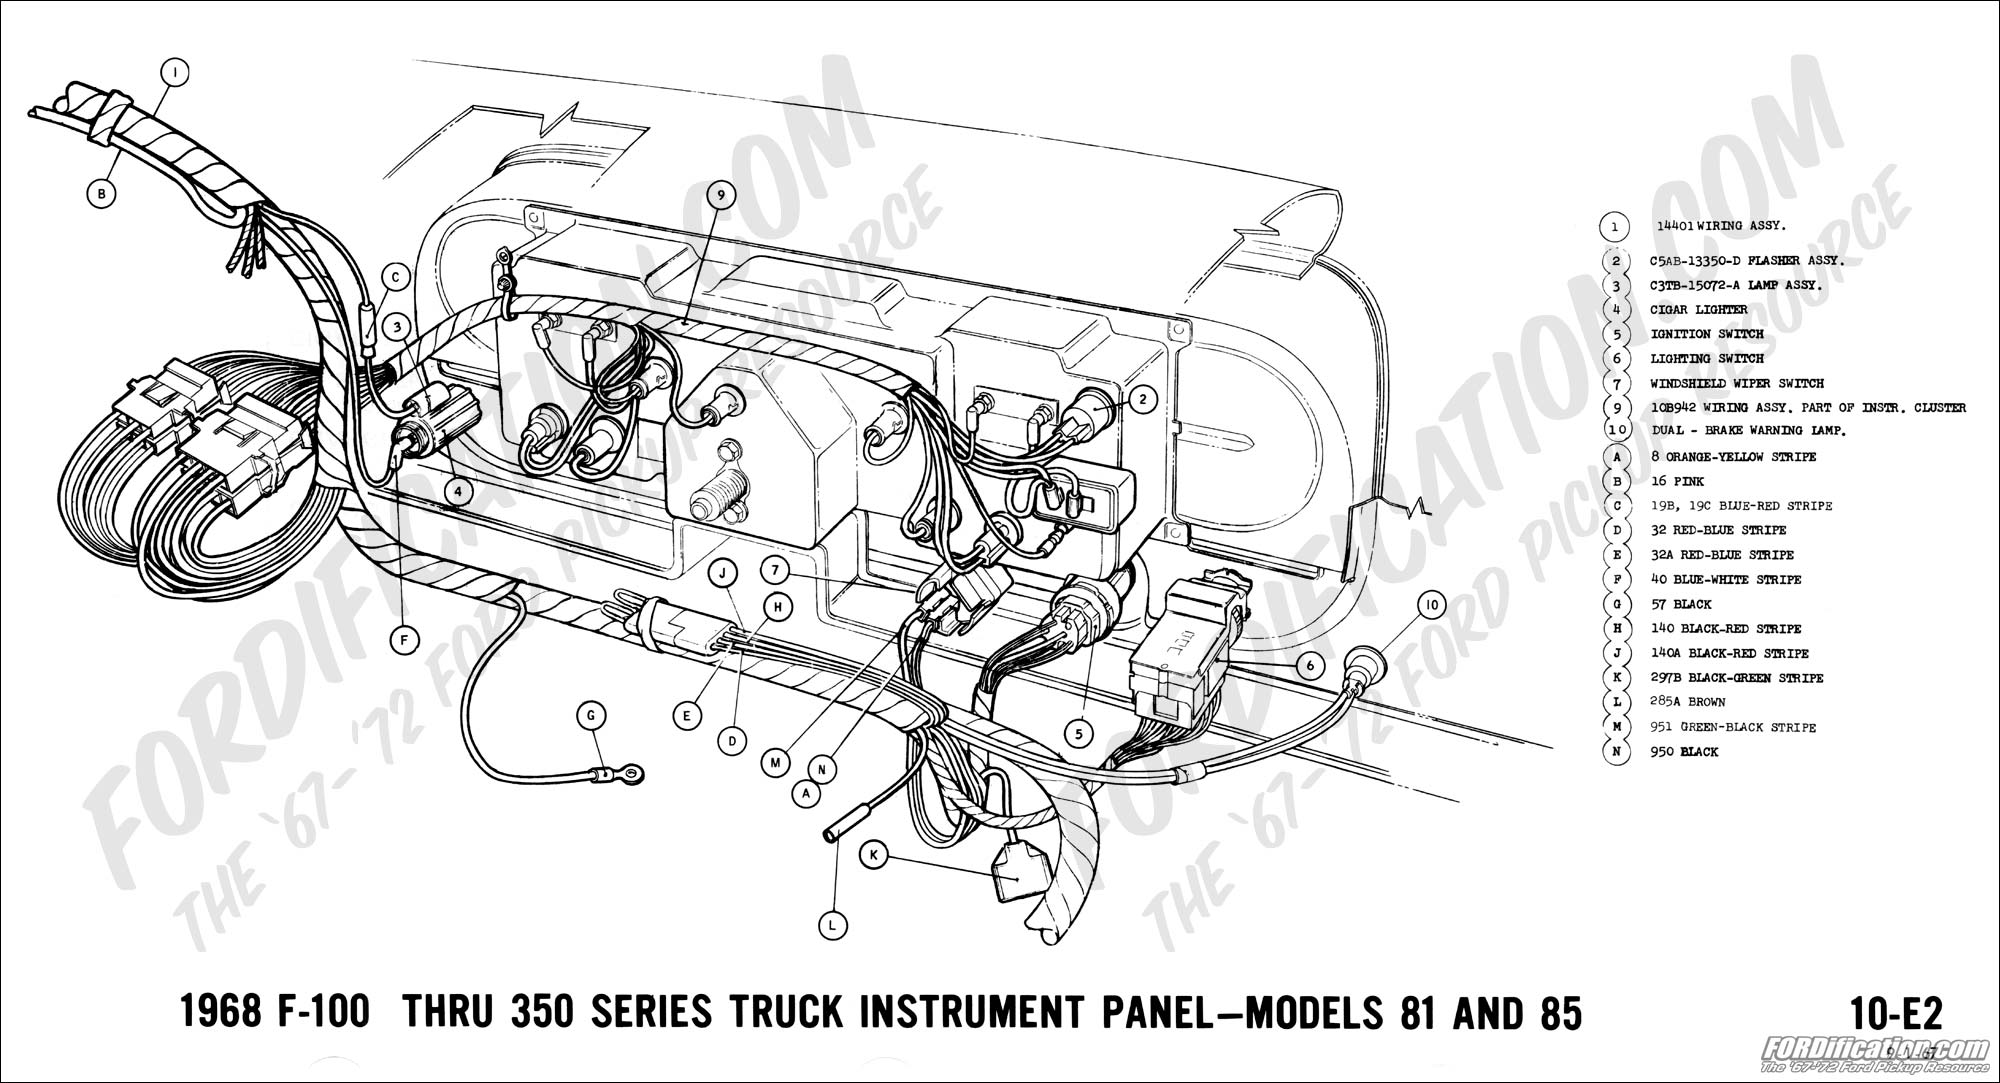 1967 F 100 Color Wiring Diagram Archive Of Automotive 1968 Thunderbird Diagrams Ford Truck Technical Drawings And Schematics Section H Rh Fordification Com